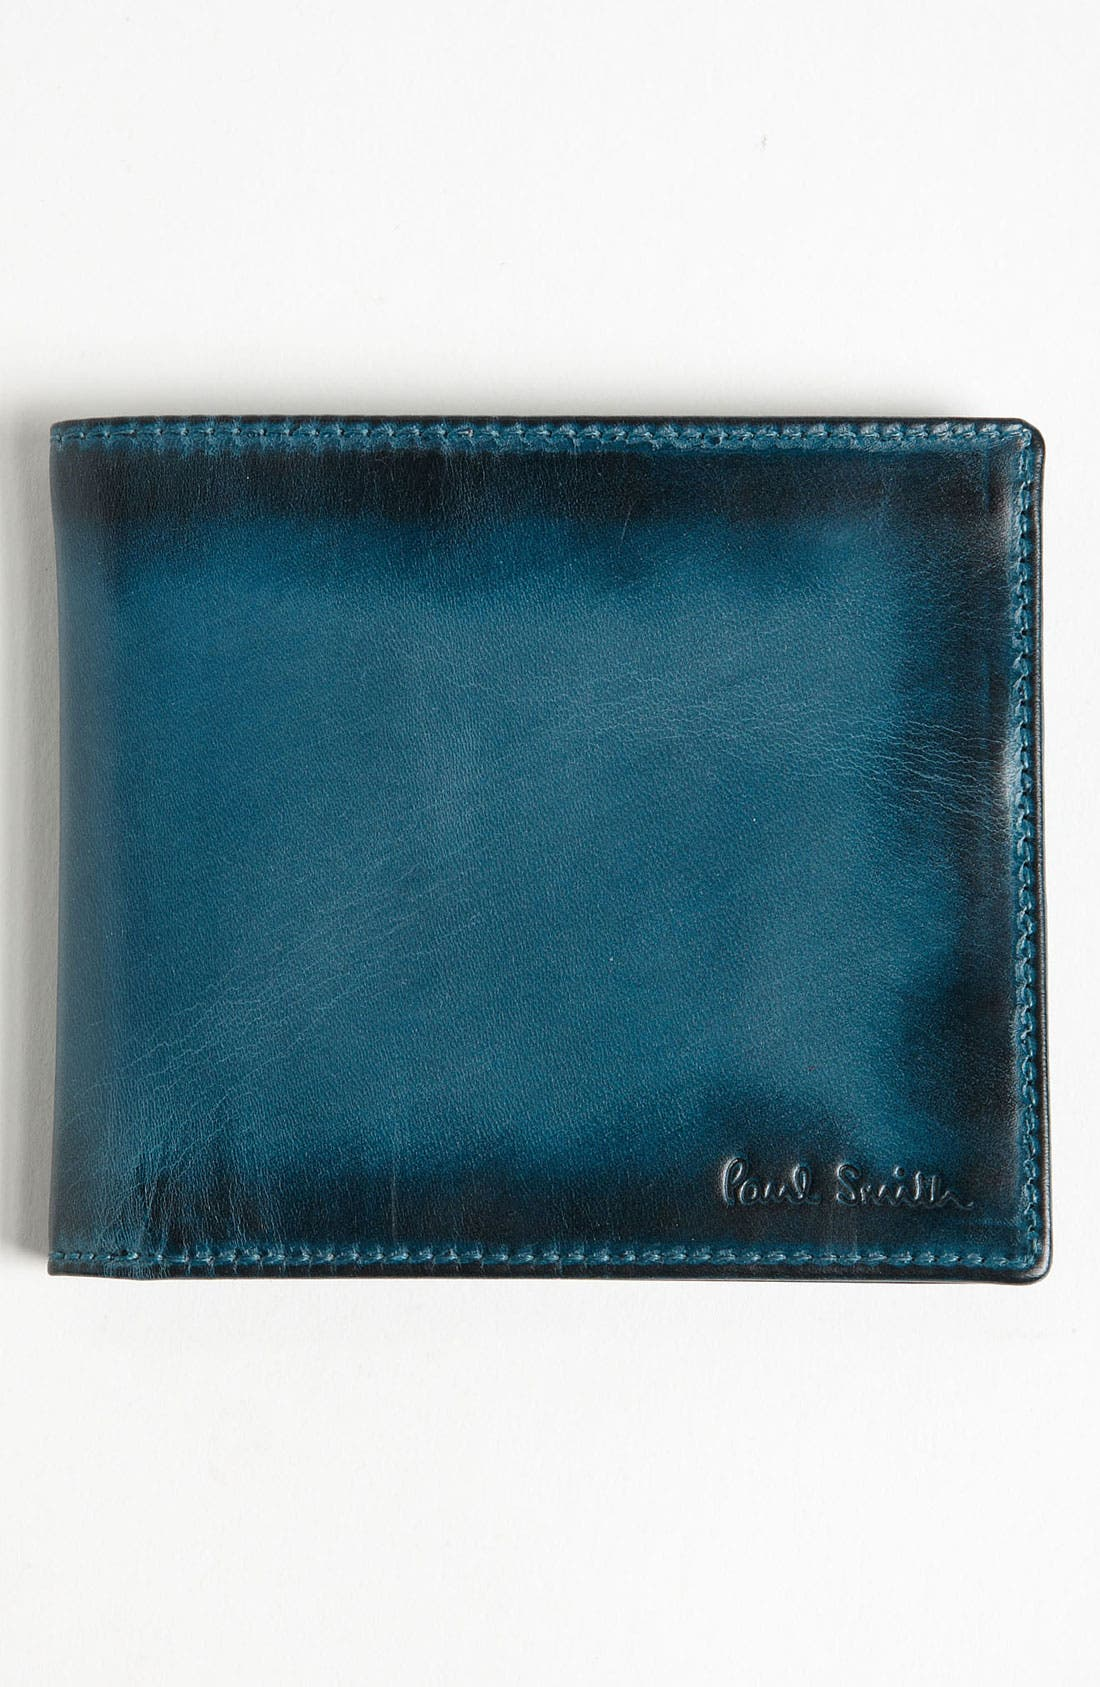 Alternate Image 1 Selected - Paul Smith Accessories Billfold Wallet